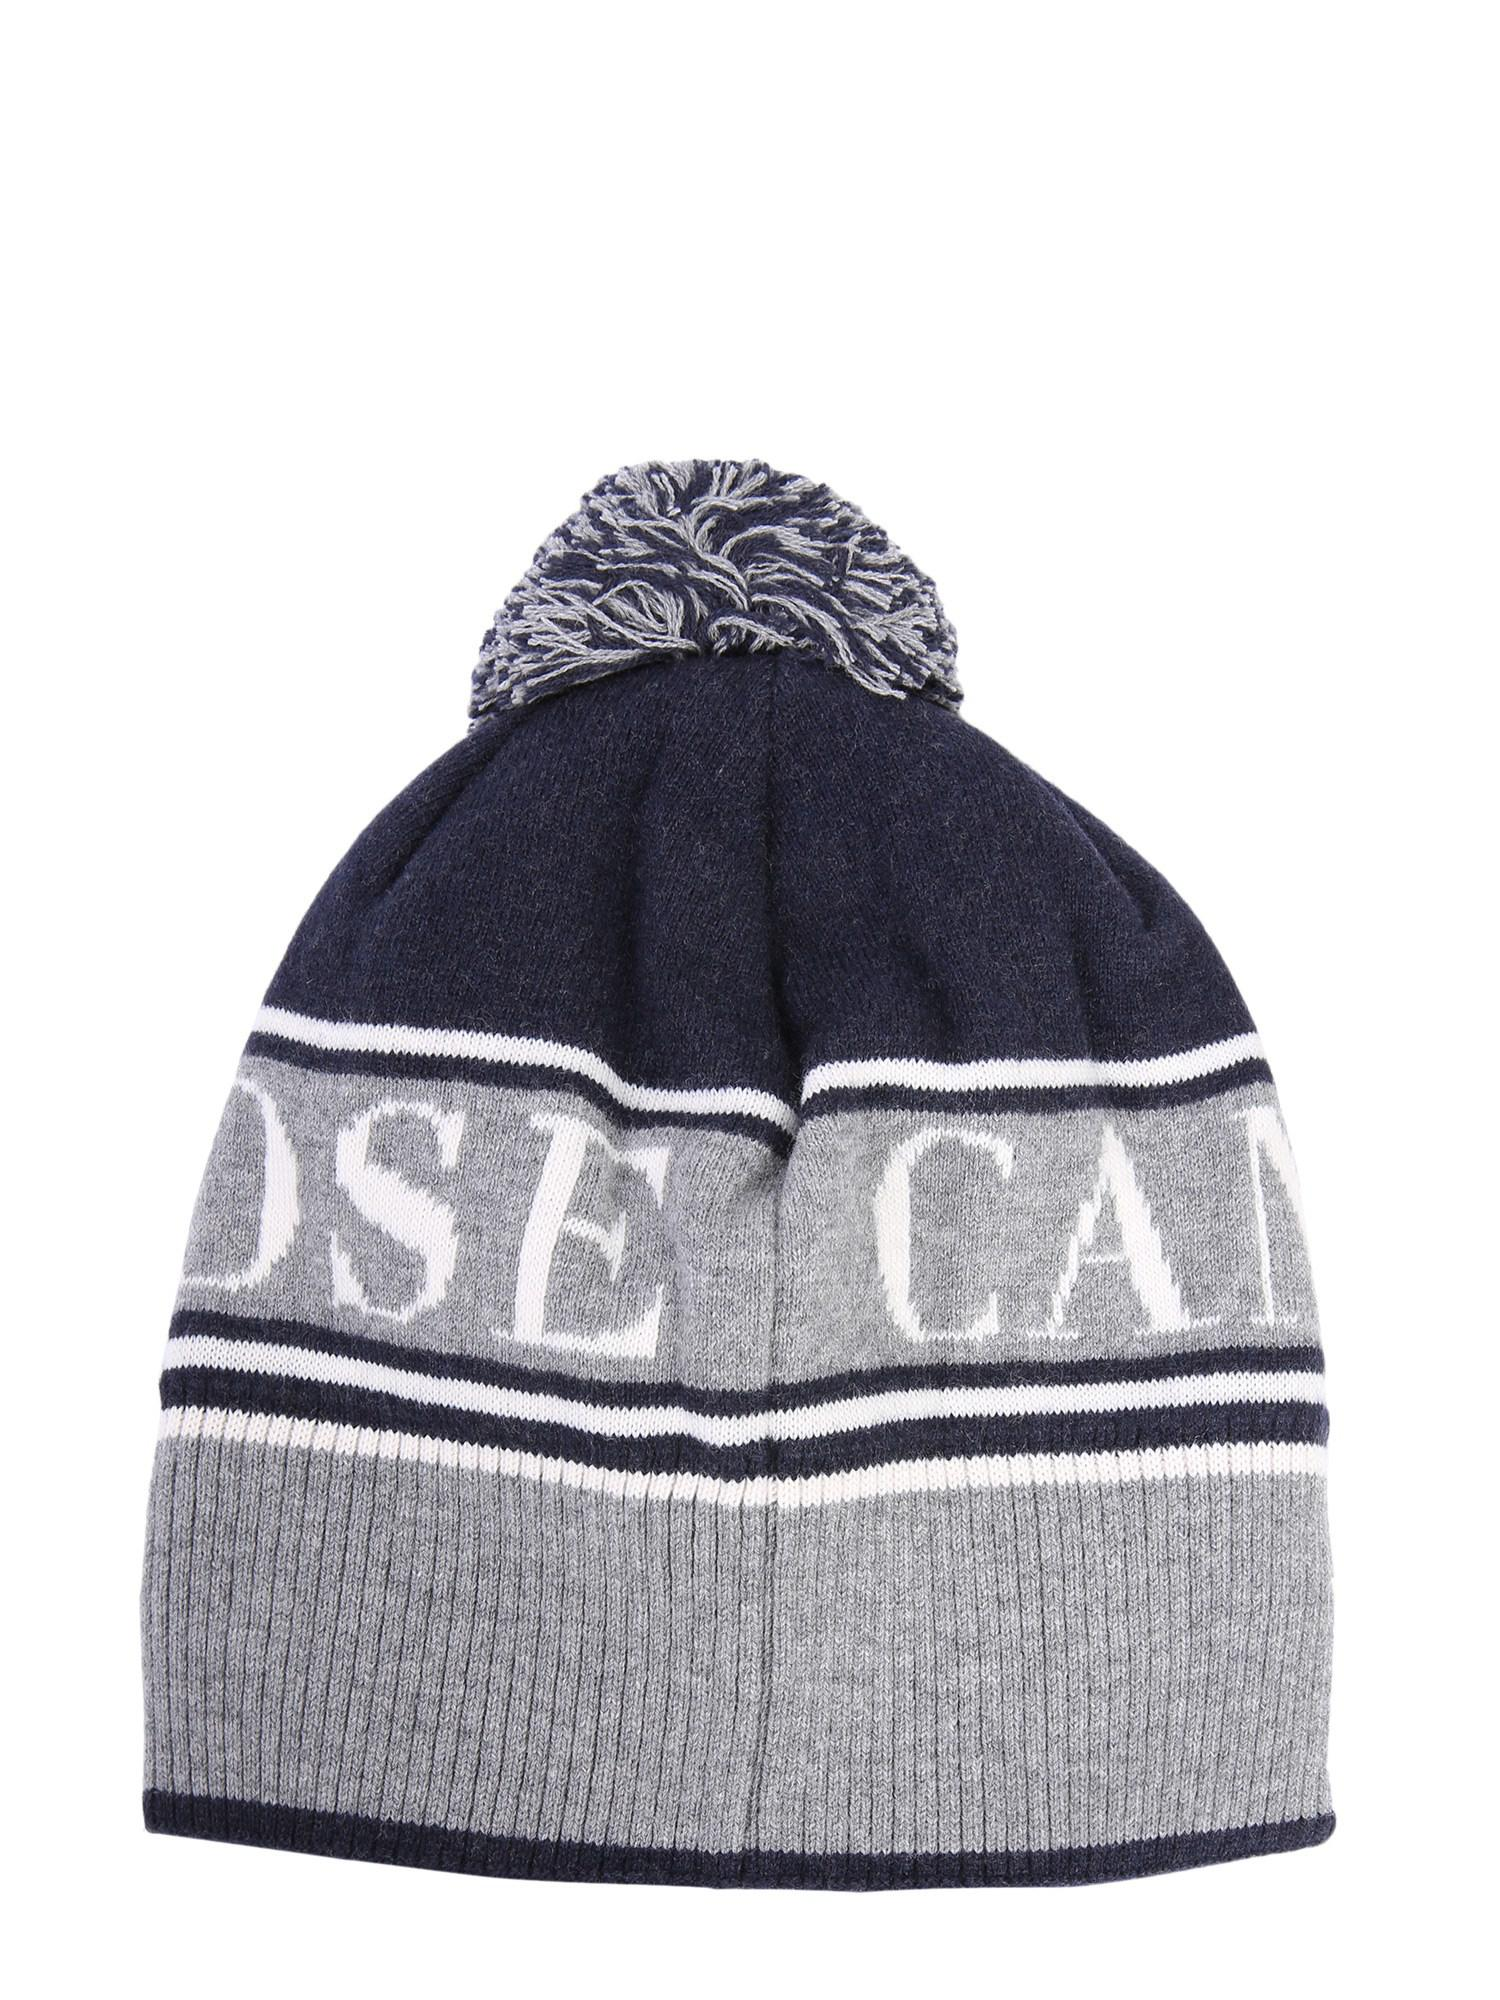 00bc646f85b Canada Goose - Blue Wool Beanie With Logo And Pompom for Men - Lyst. View  fullscreen